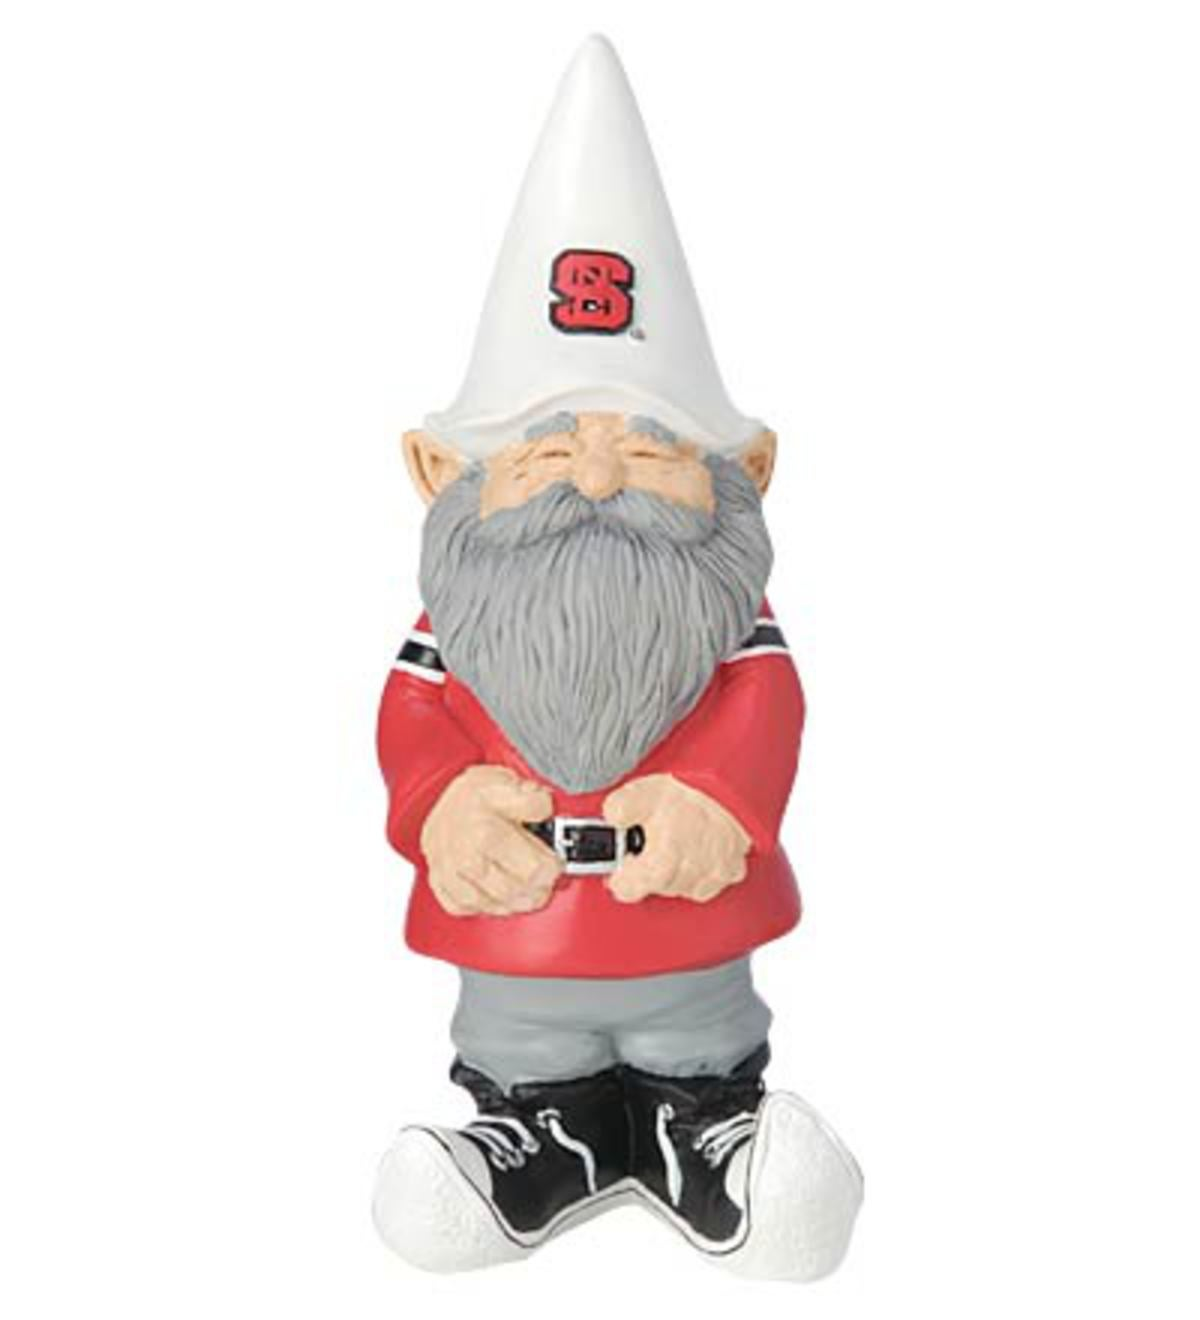 Collegiate Gnome - North Carolina State University